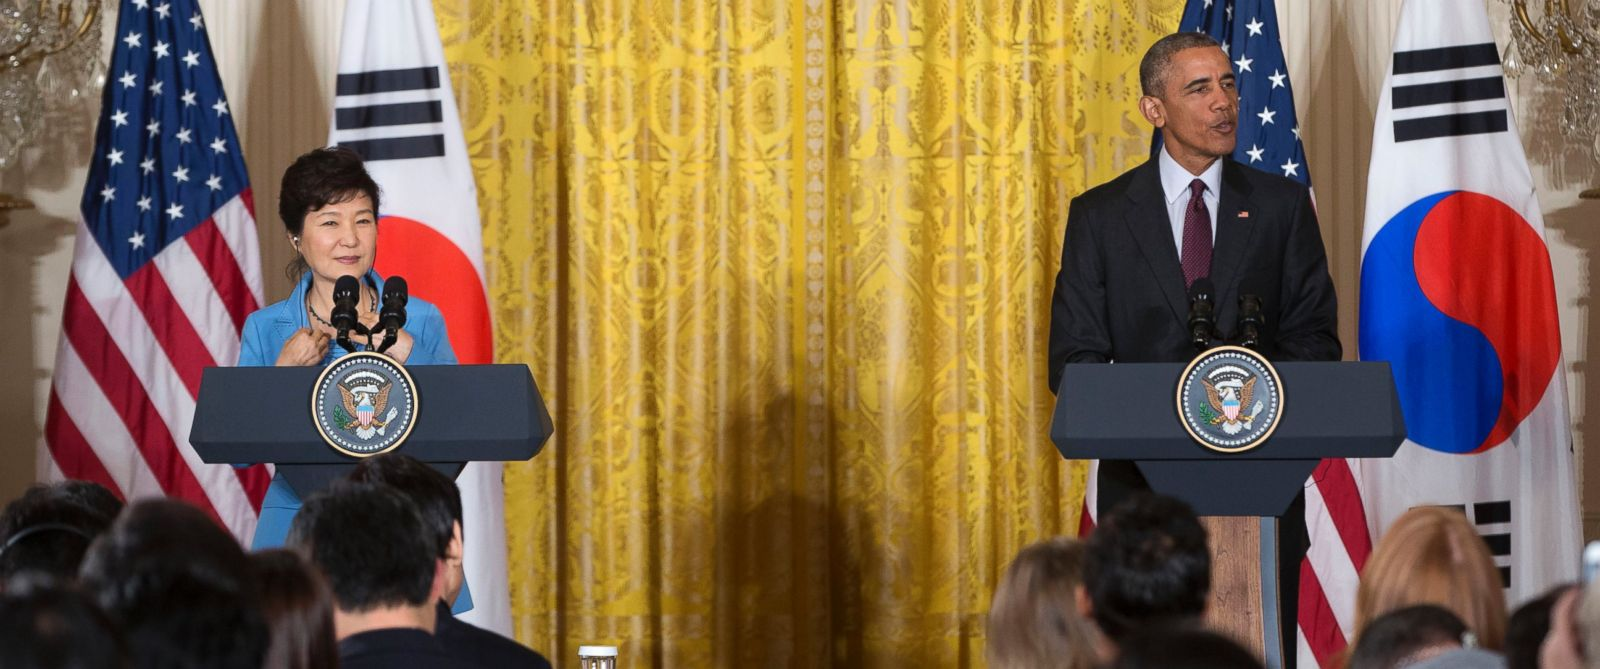 PHOTO: President Barack Obama and South Korean President Park Geun-hye take part in a joint news conference in the East Room of the White House in Washington, Oct. 16, 2015.